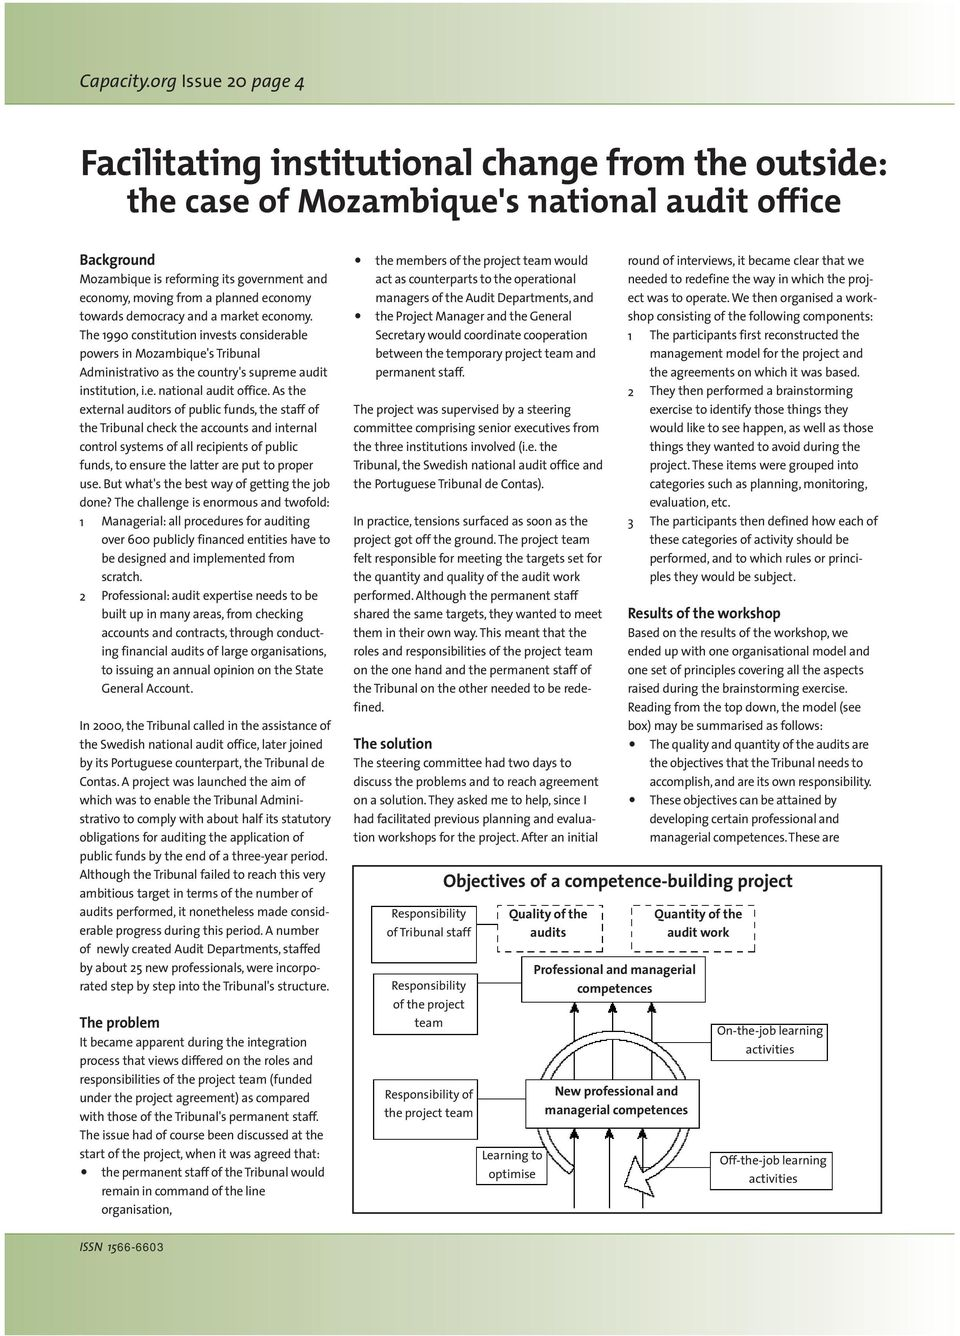 planned economy towards democracy and a market economy. The 1990 constitution invests considerable powers in Mozambique's Tribunal Administrativo as the country's supreme audit institution, i.e. national audit office.